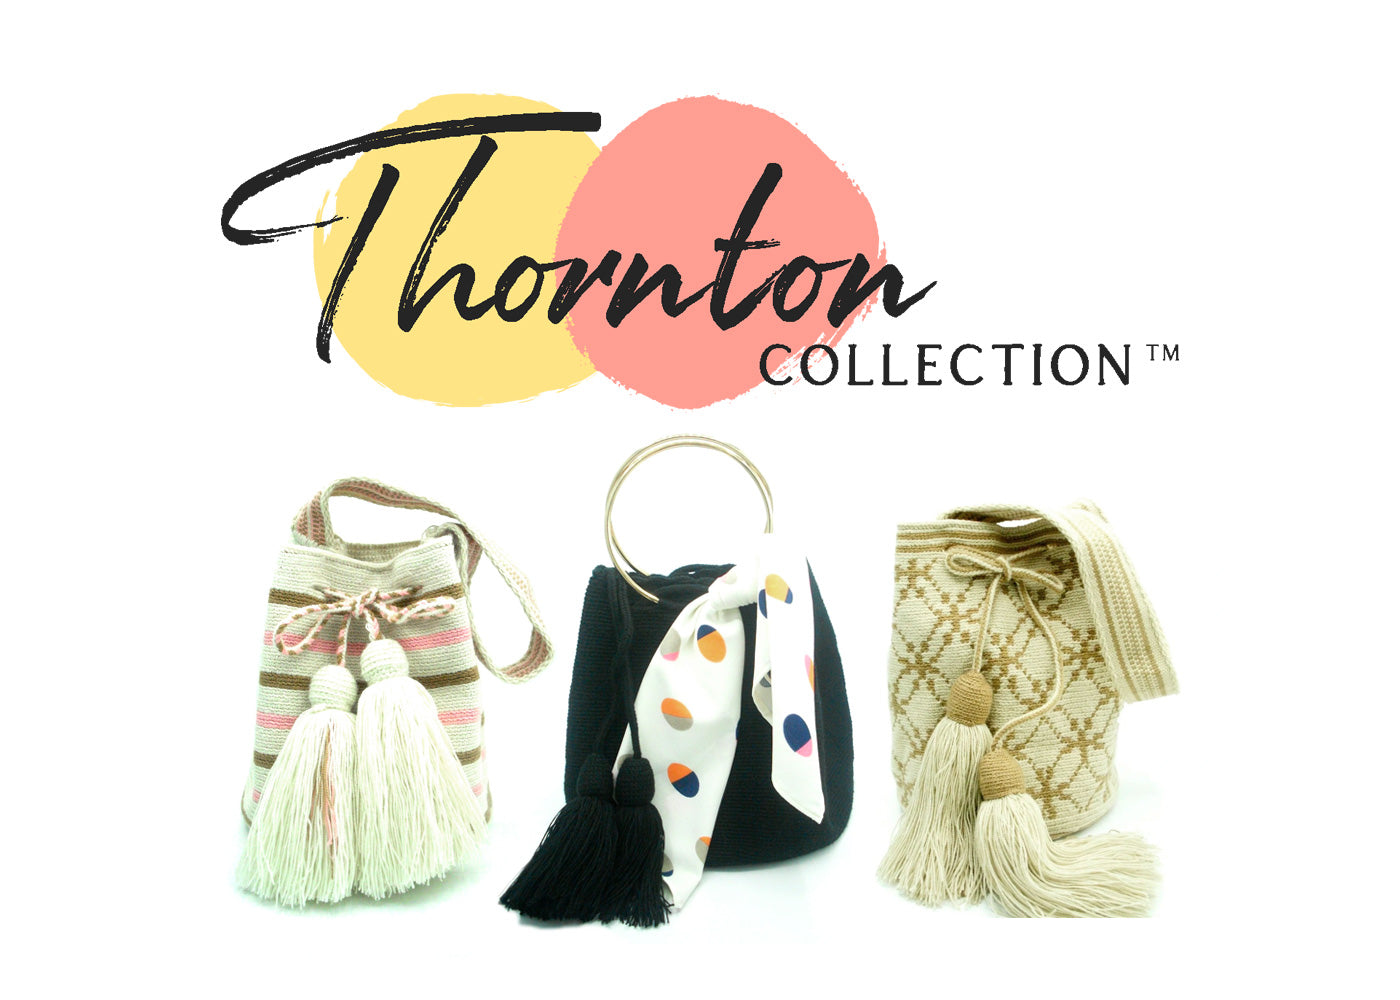 Thornton Collection™ by D'cocora